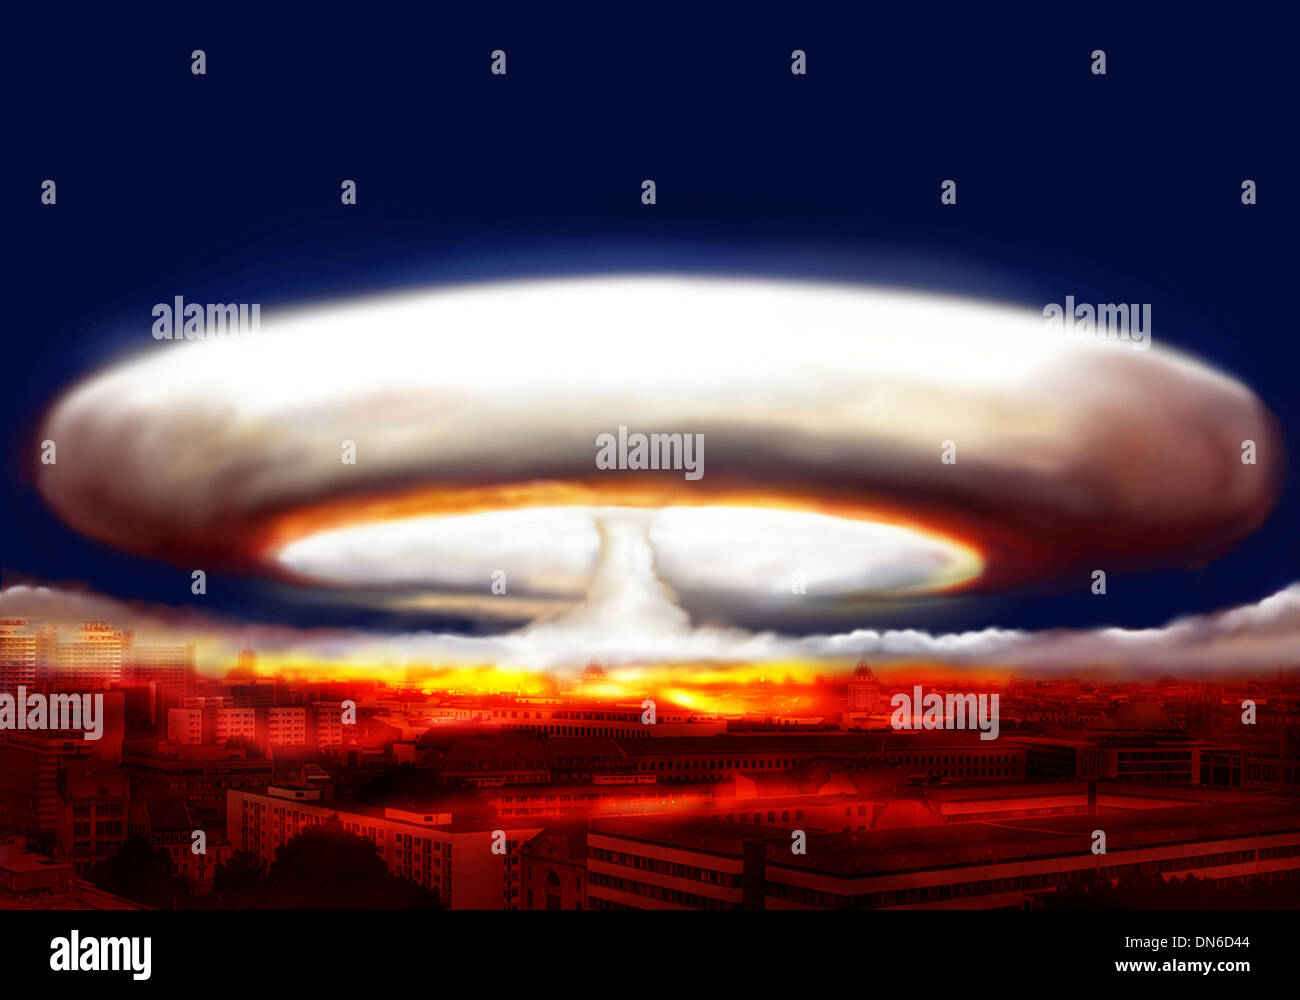 explosion of nuclear bomb over city - Stock Image